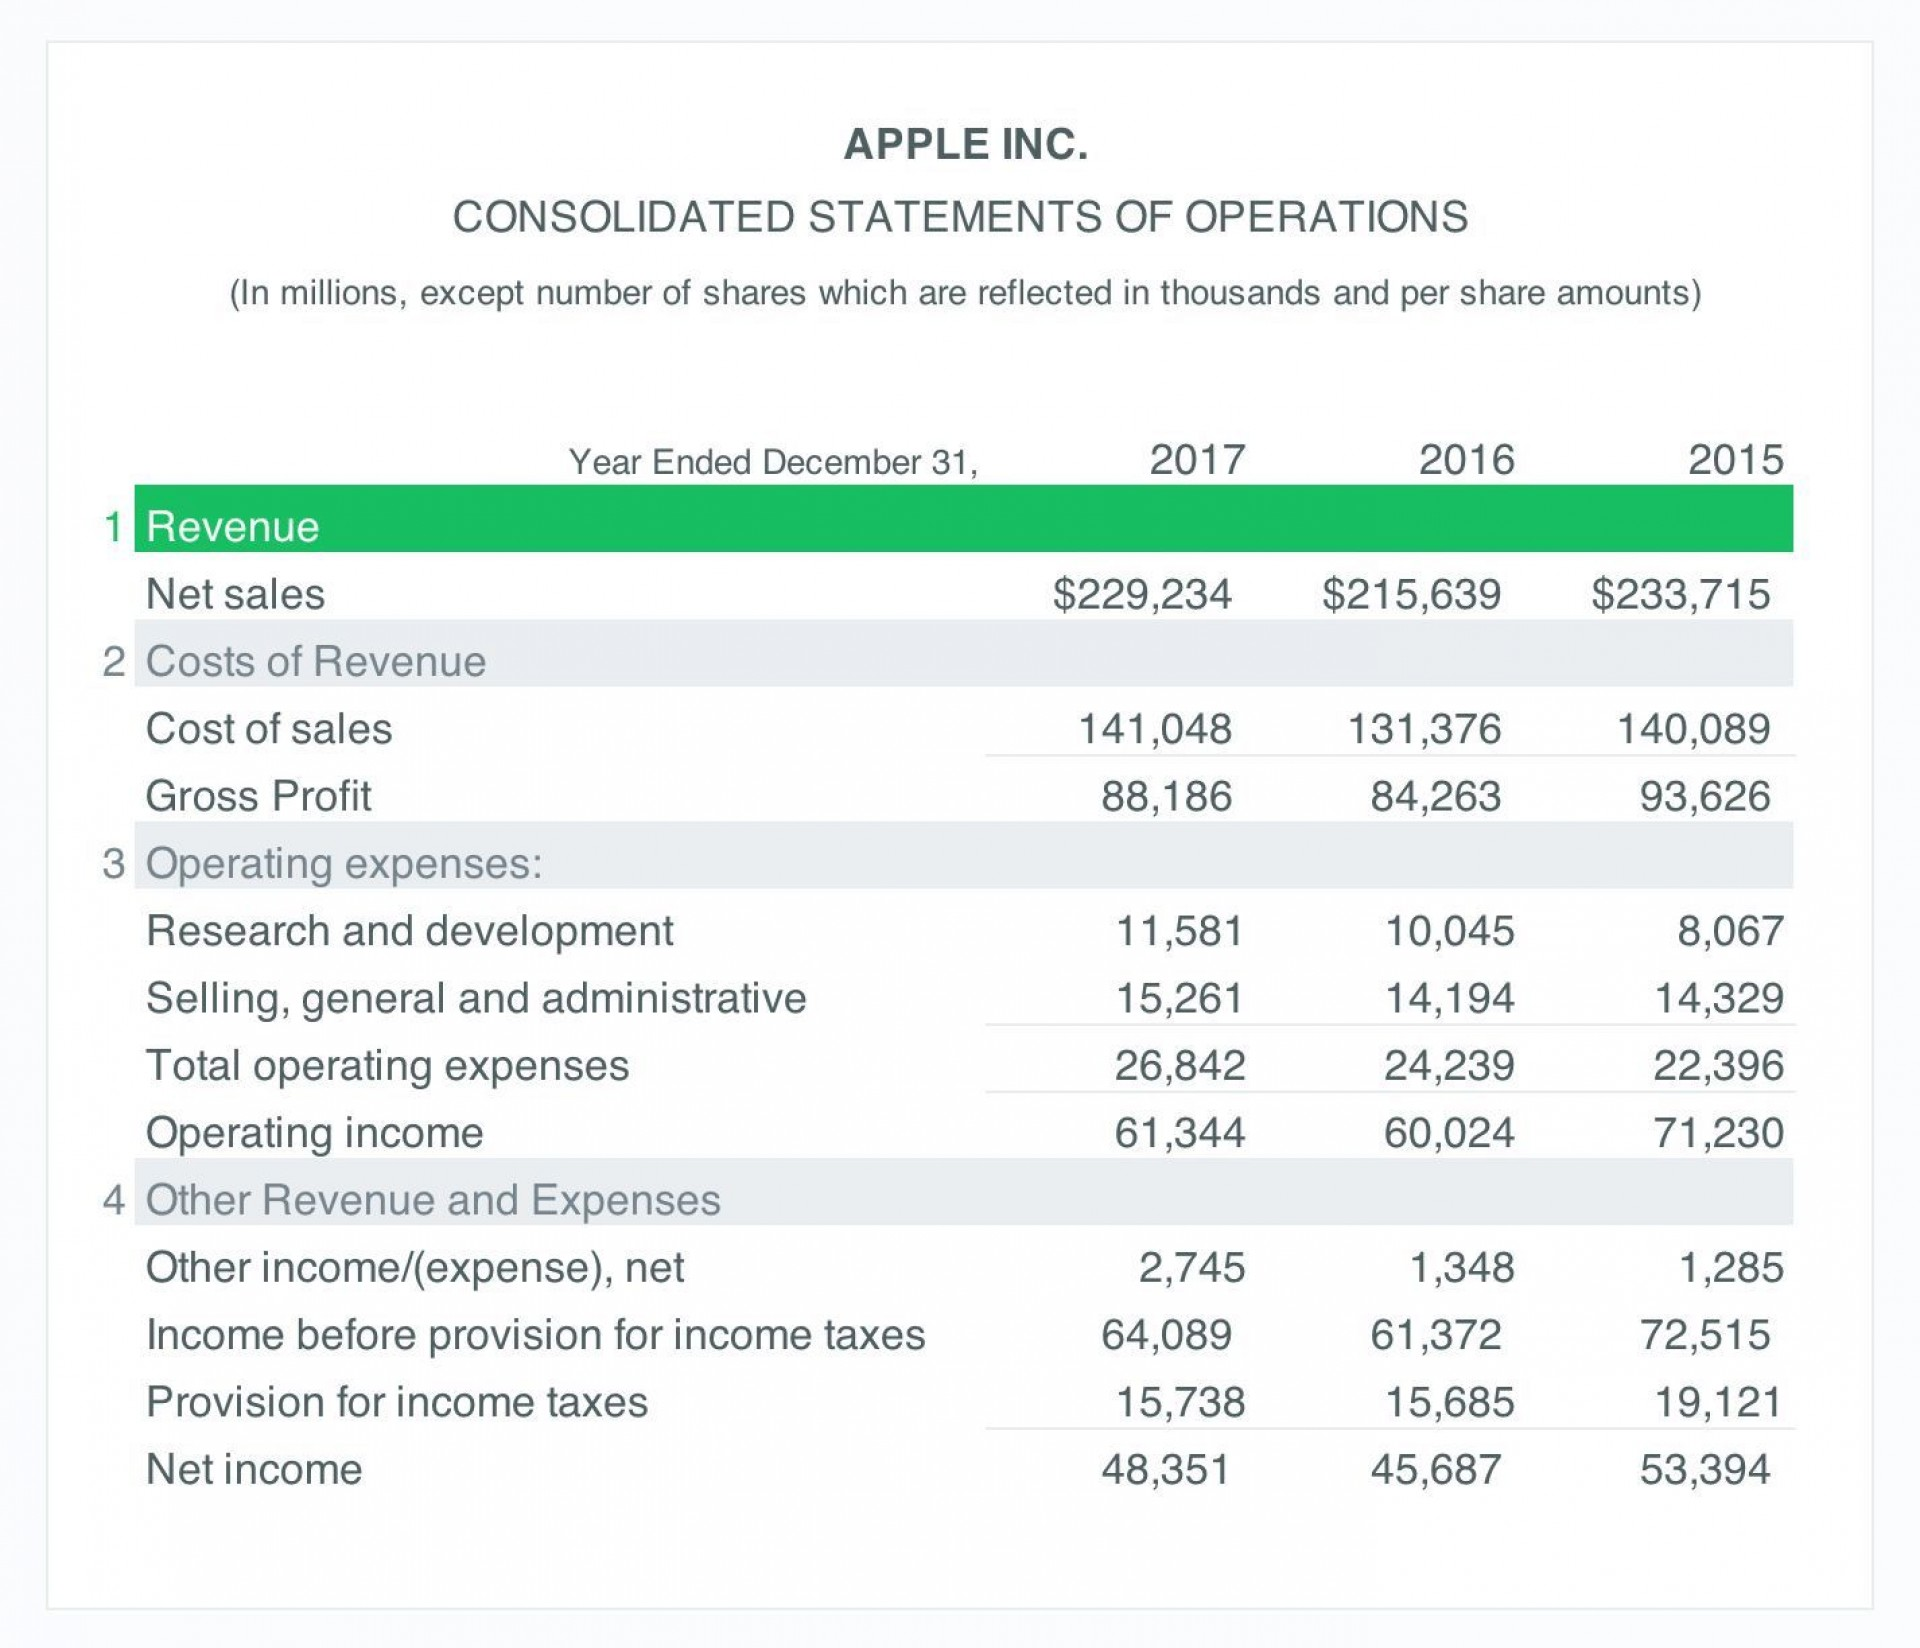 001 Unusual Income Statement Format Excel Free Download High Definition  Monthly1920